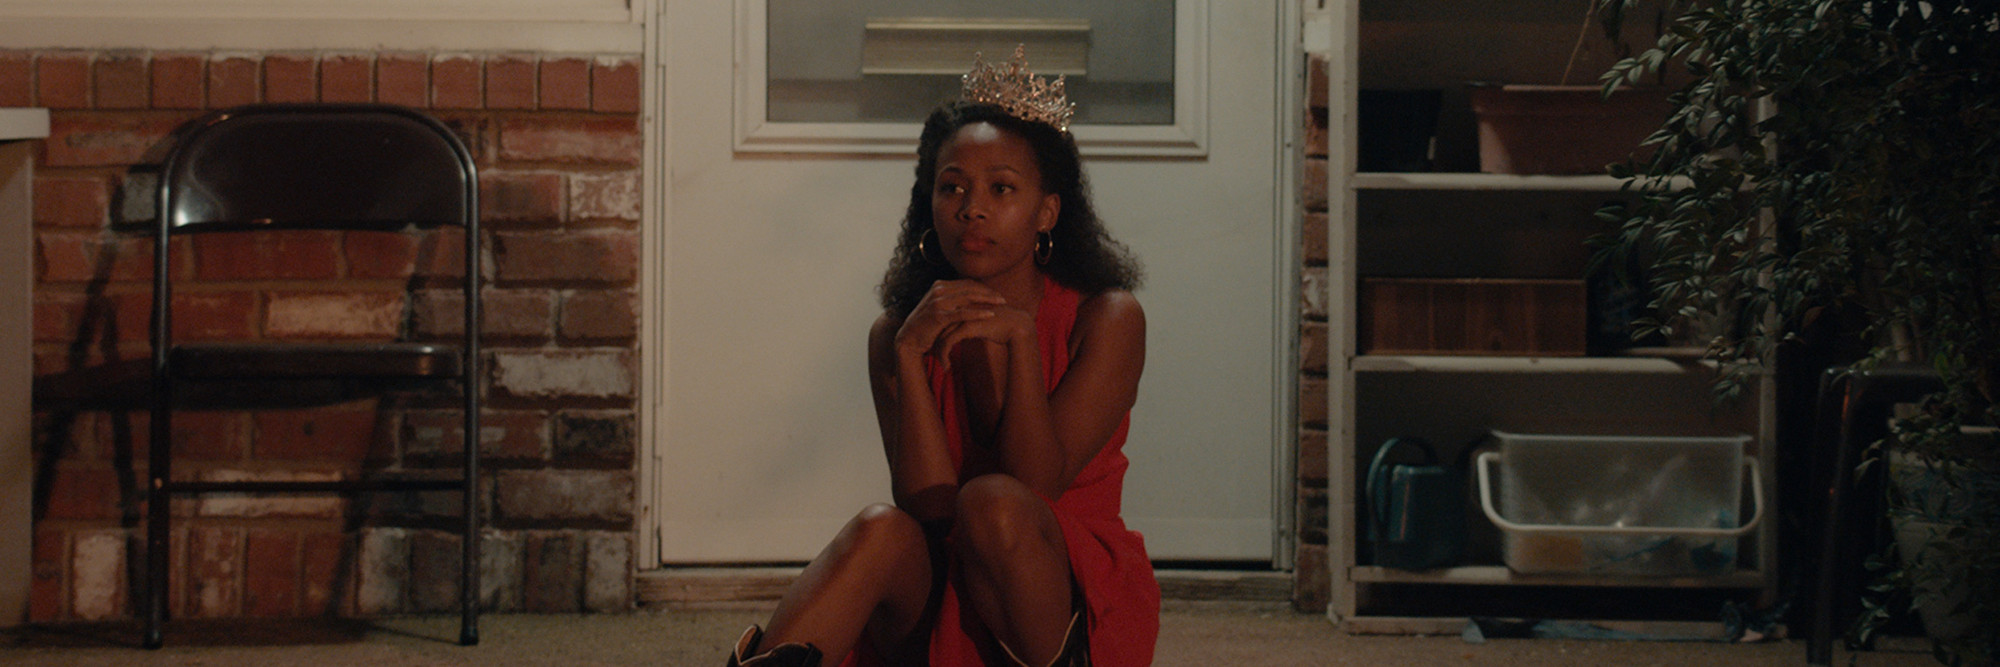 Miss Juneteenth. 2020. USA. Written and directed by Channing Godfrey Peoples. Courtesy Vertical Entertainment